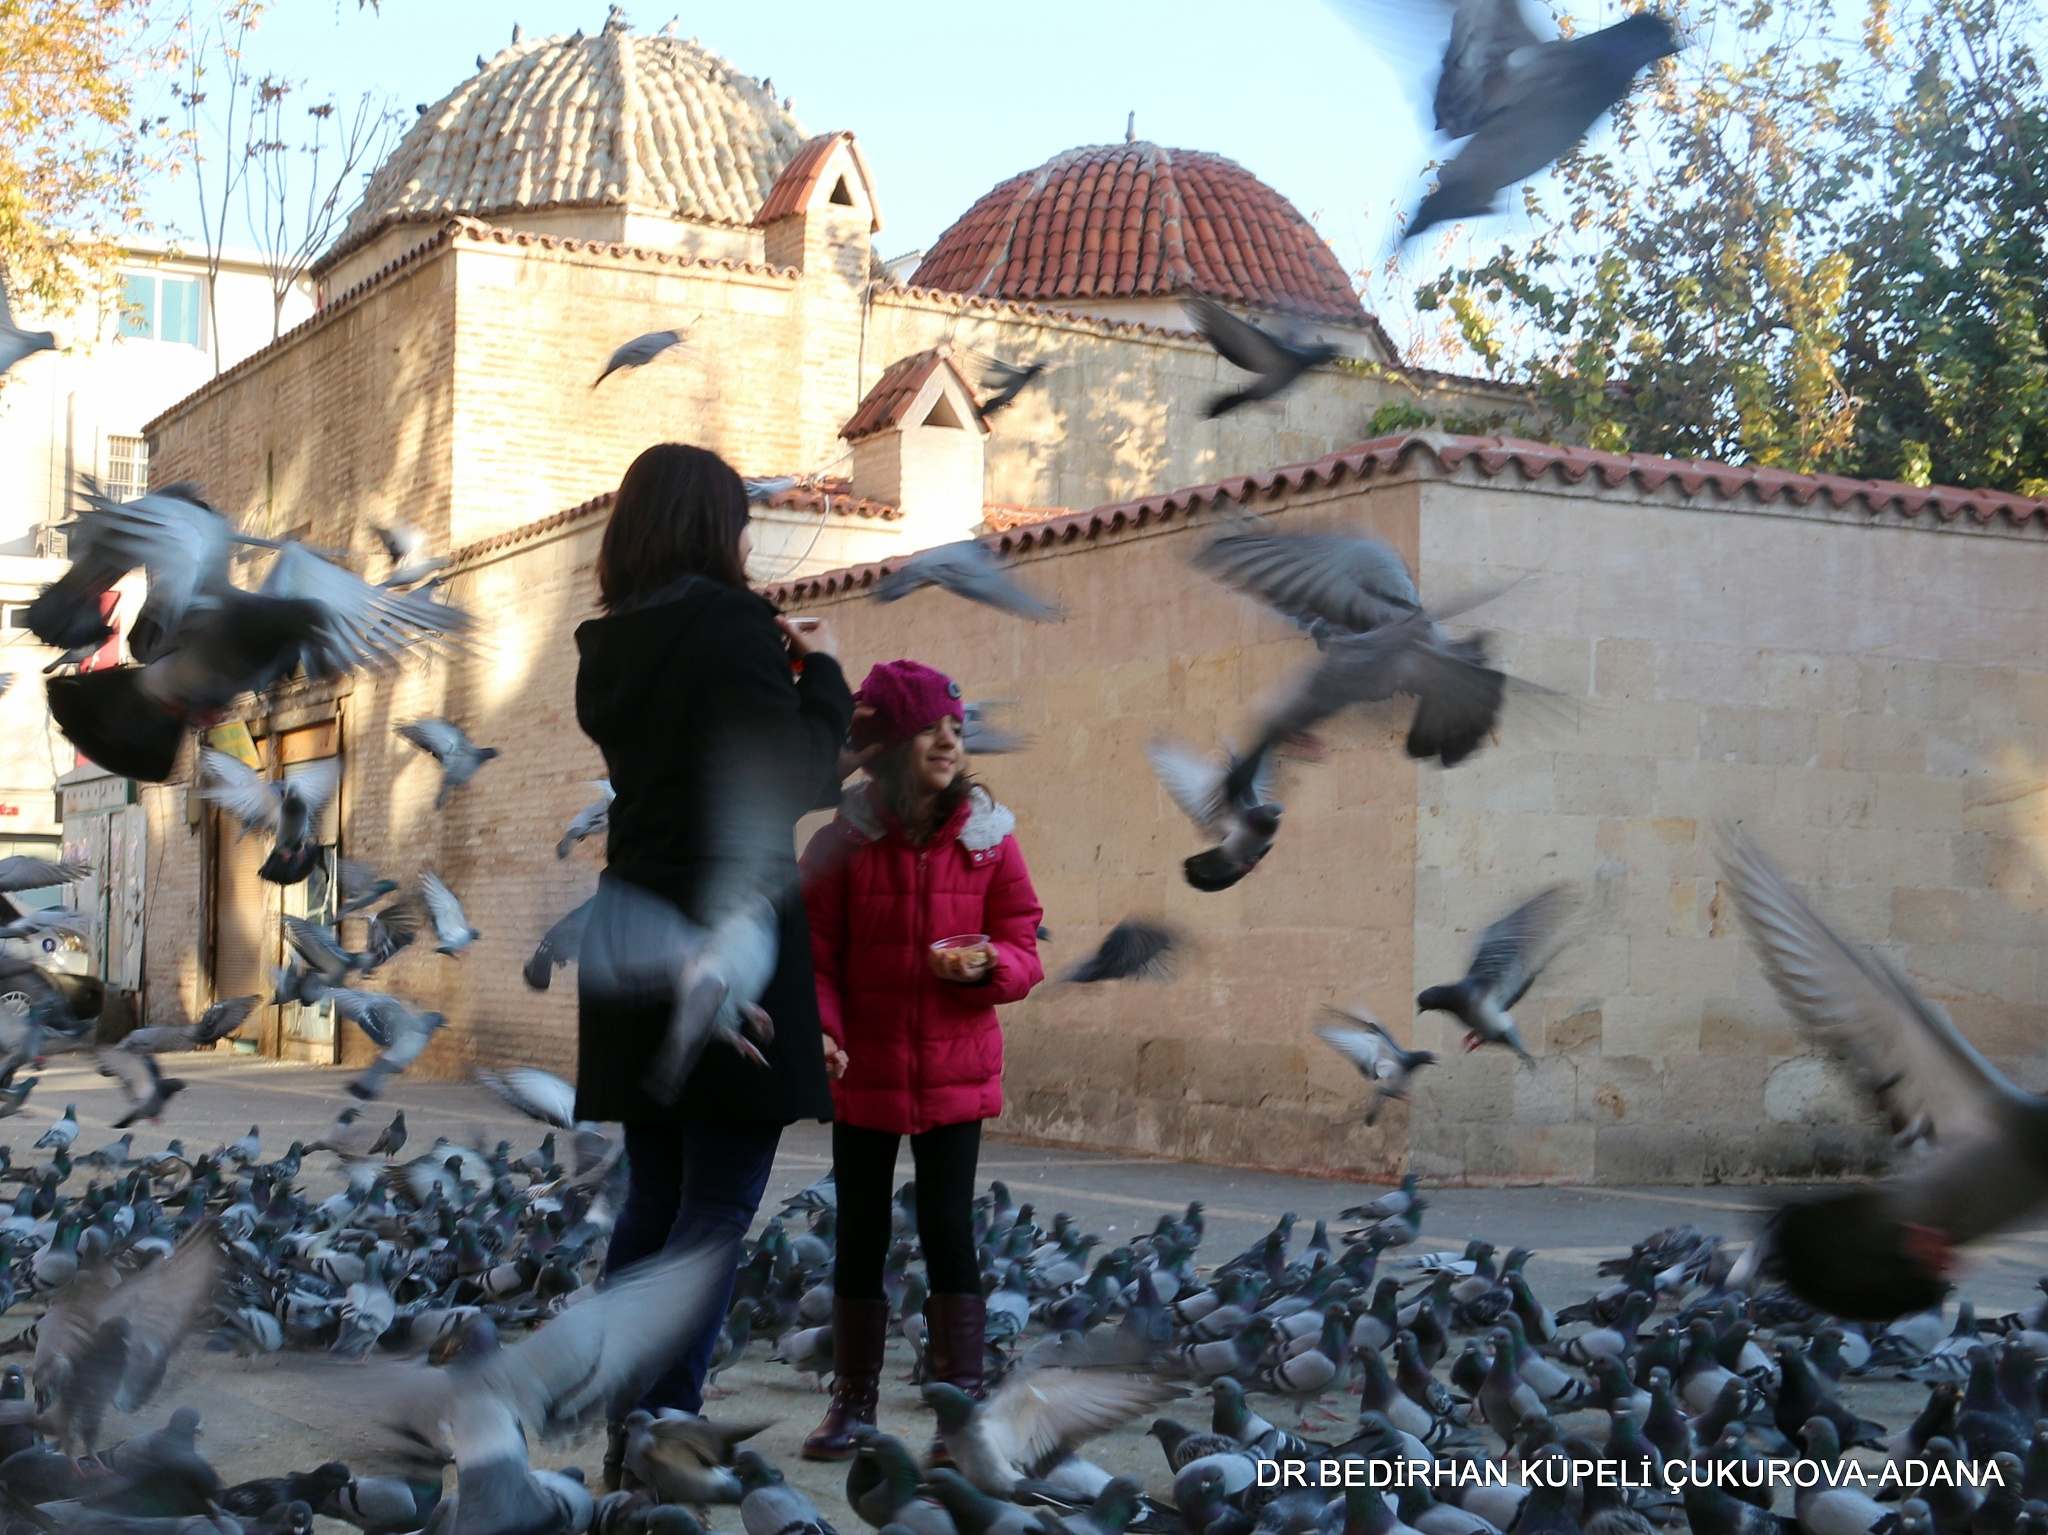 Mother and daughter among the pigeons... by Bedirhan Küpeli